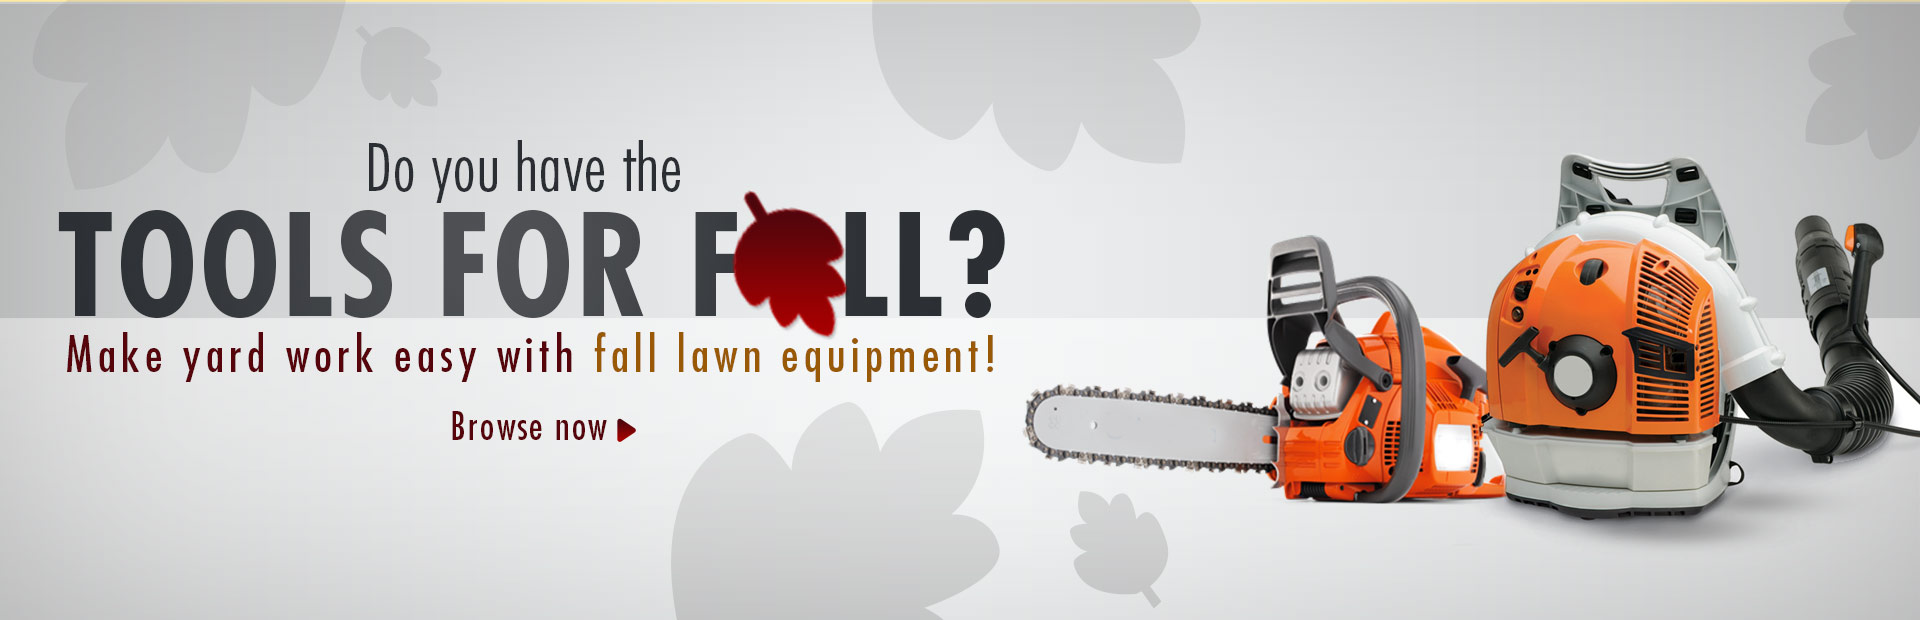 Click here to browse fall lawn equipment.